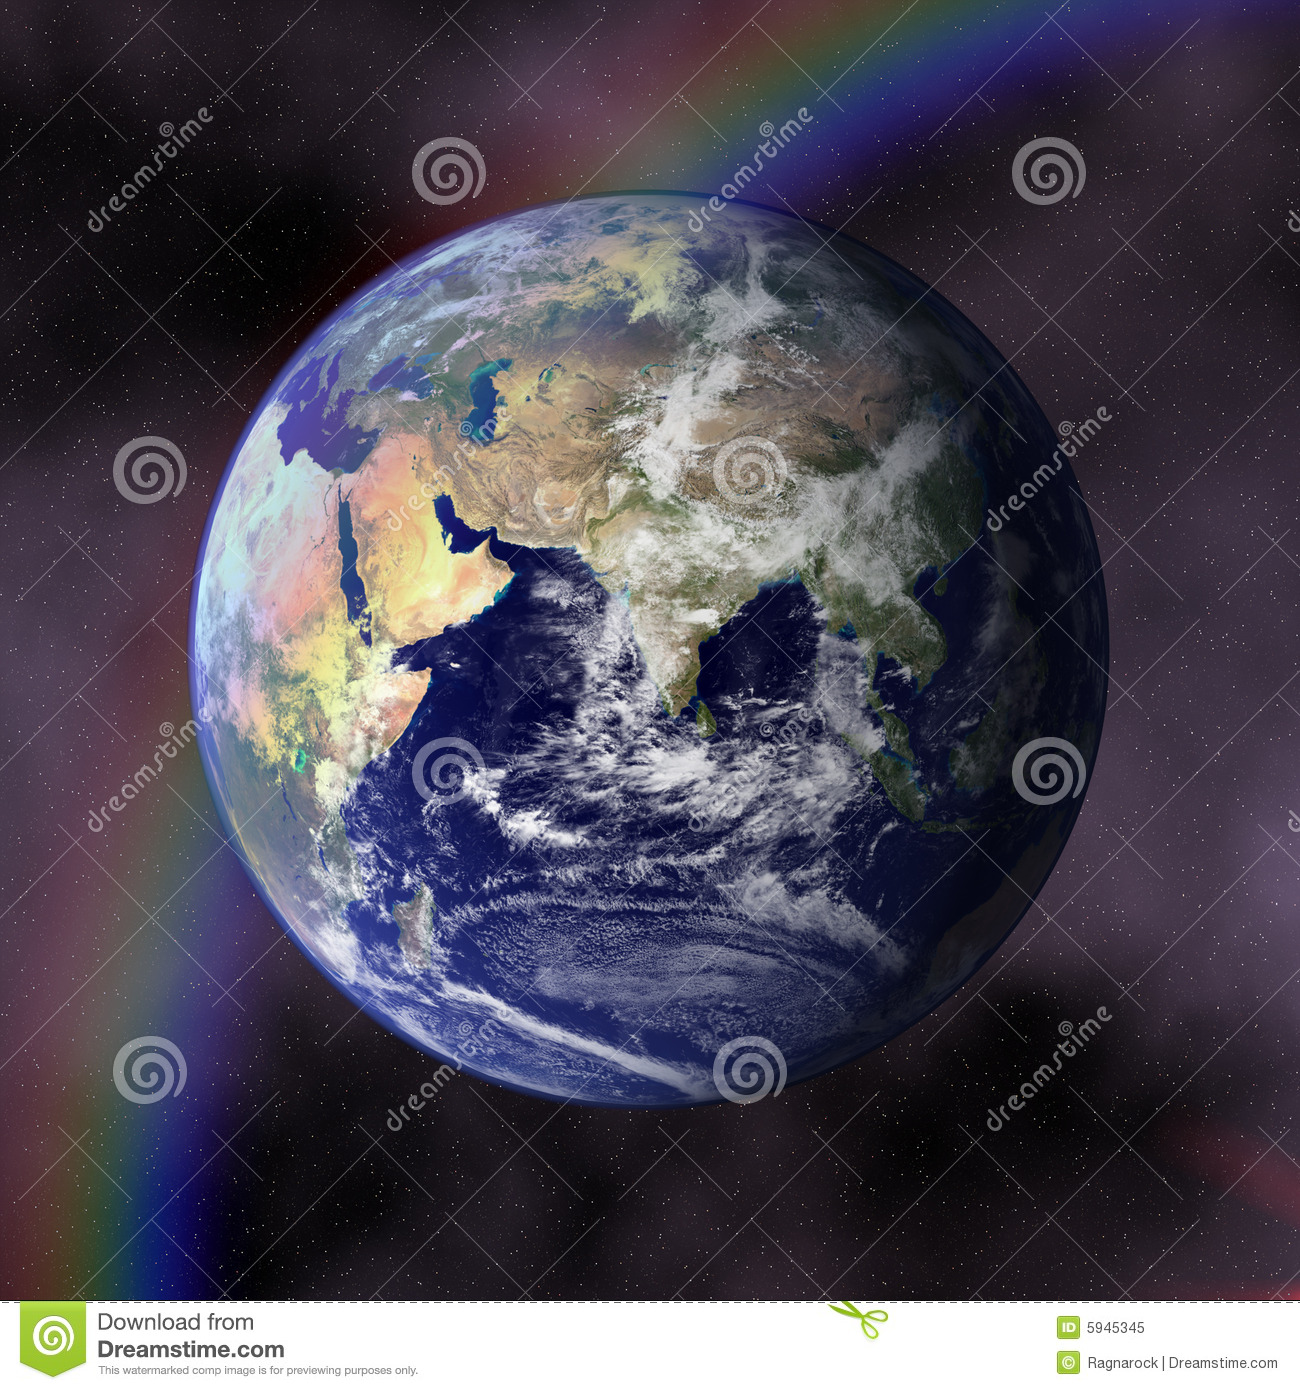 Earth Blue Planet In Space Royalty Free Stock Photo - Image: 5945345